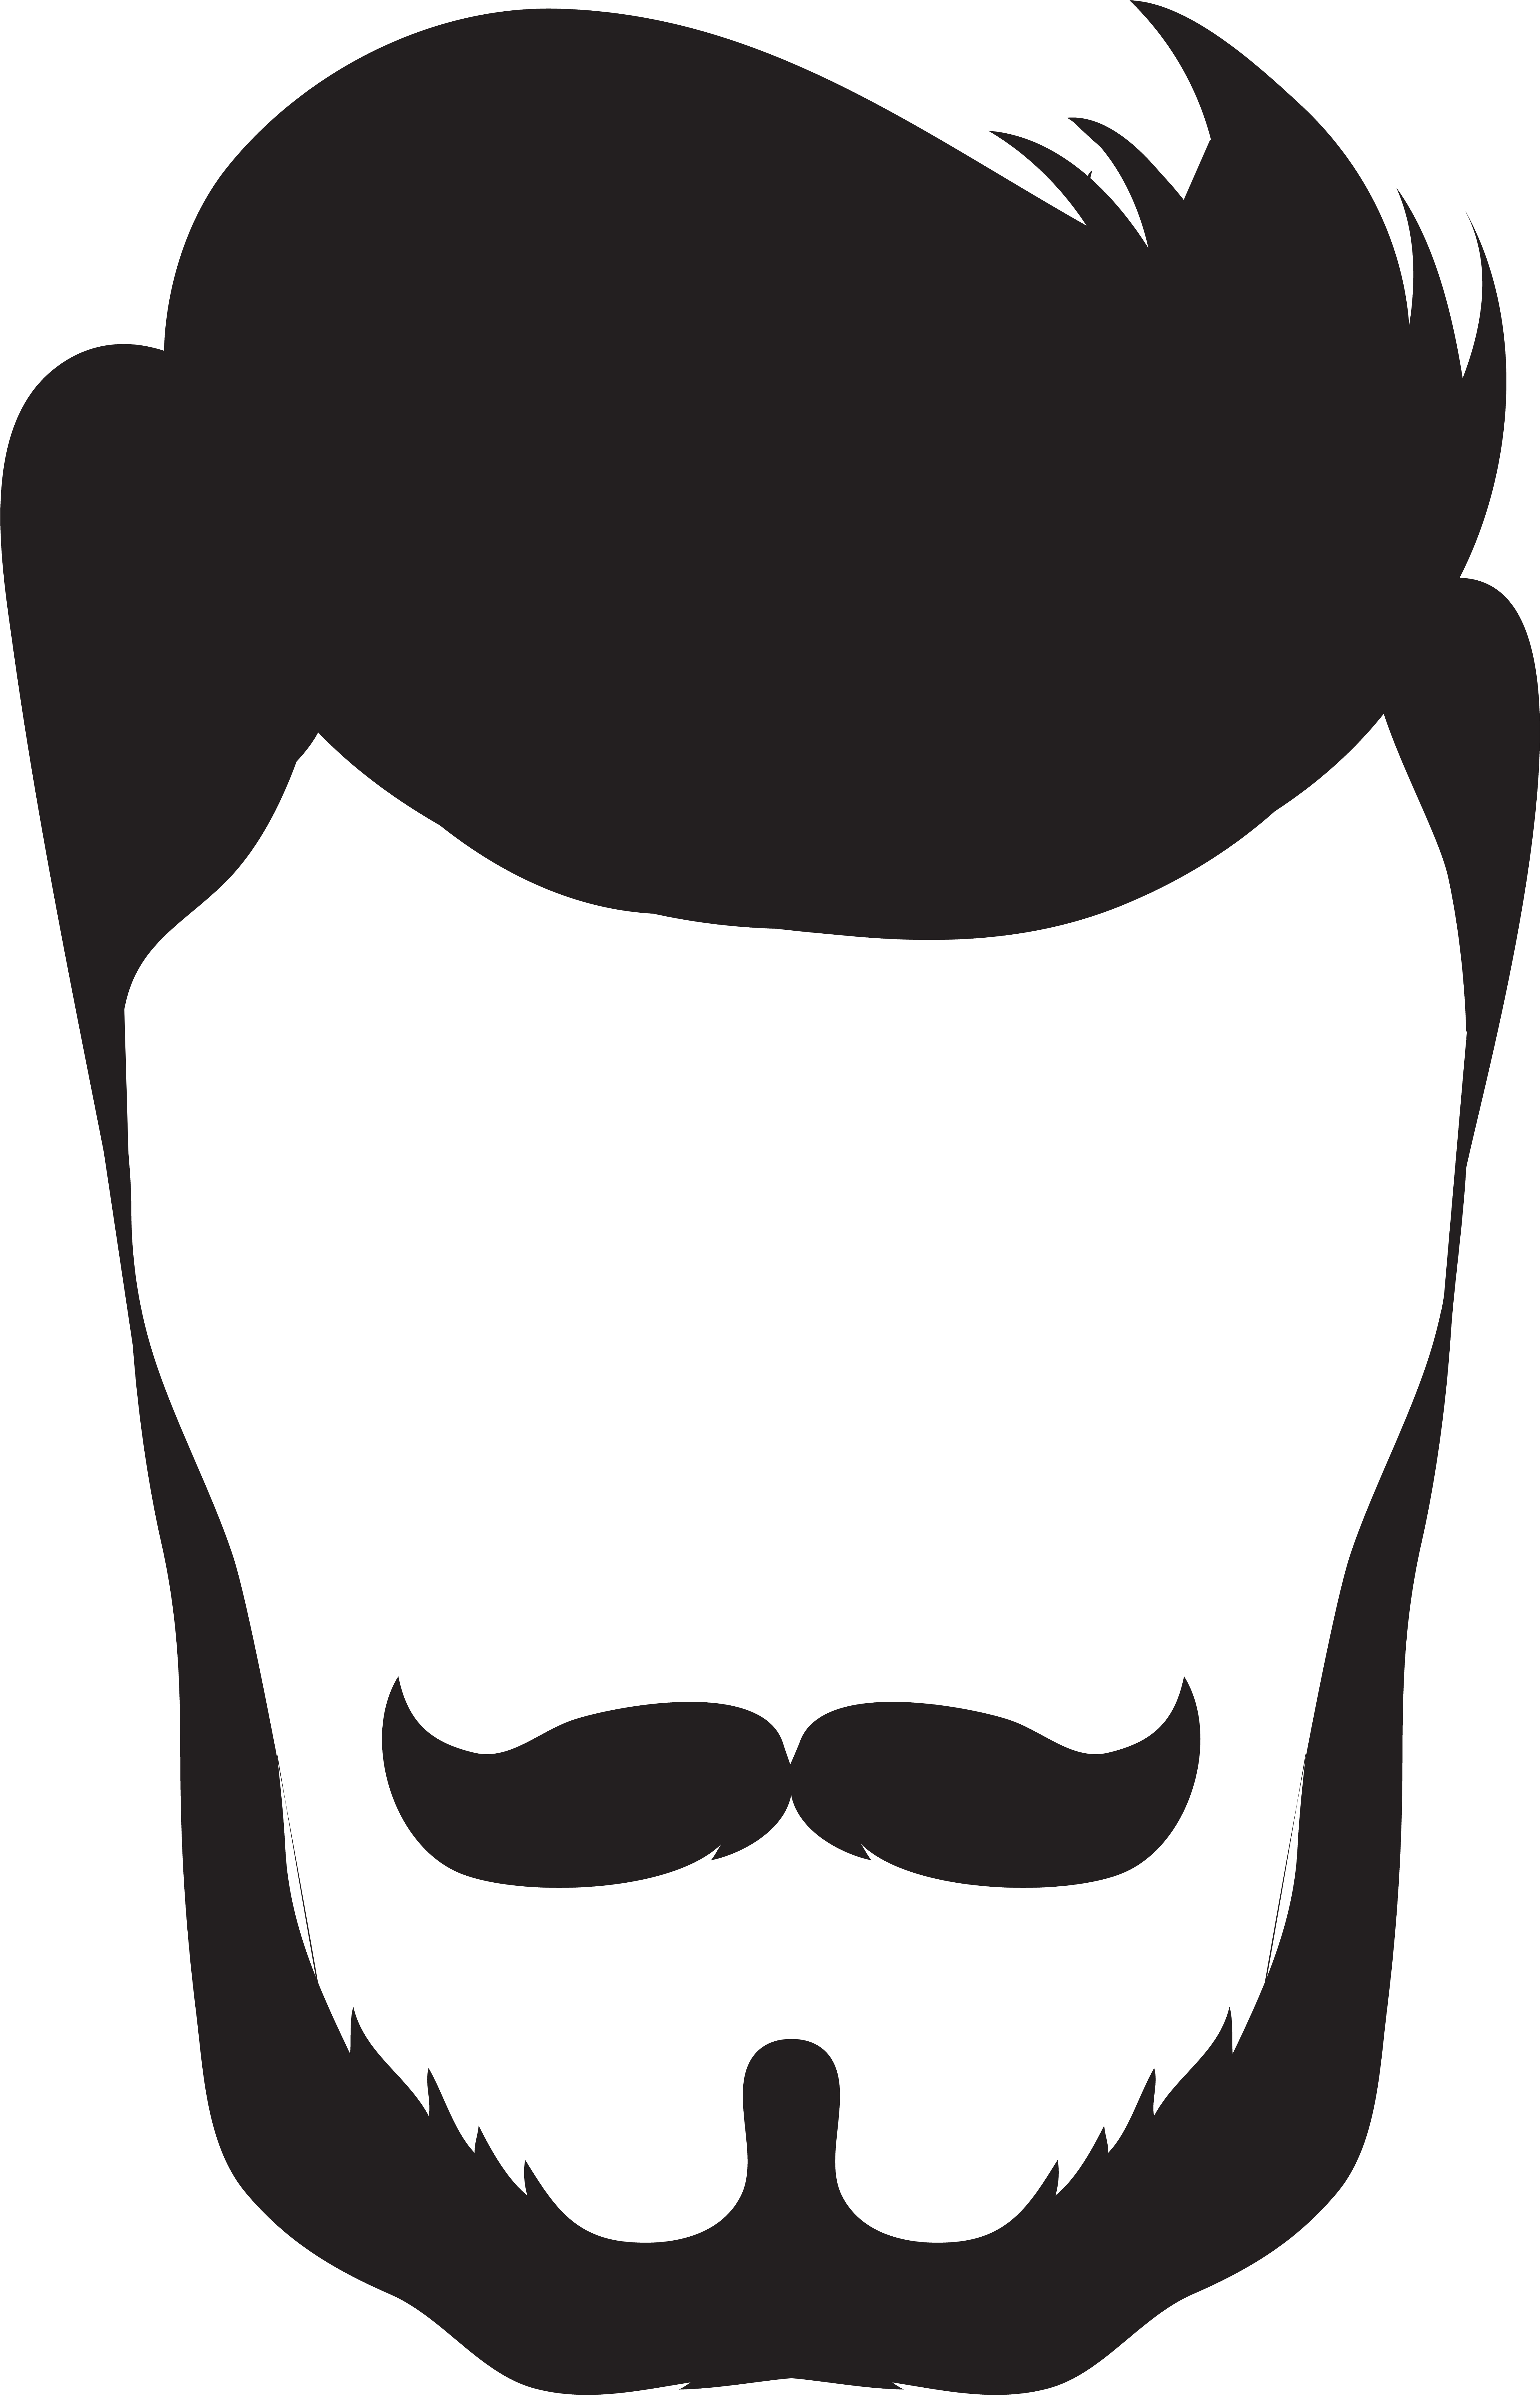 5047x7849 Goatee Drawing Simple Clipart Black And White